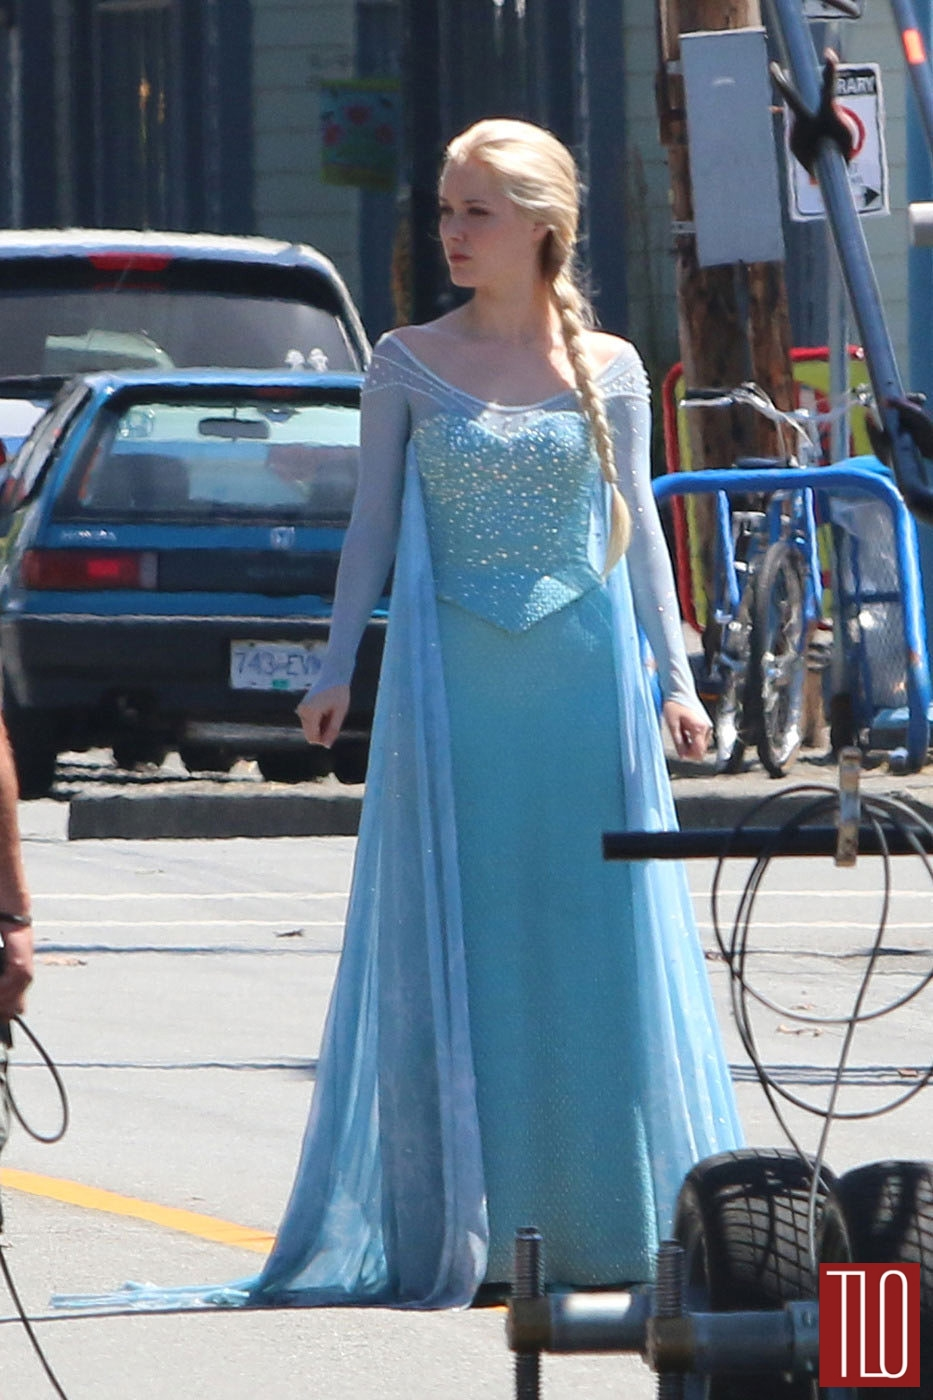 Georgina-Haig-Princess-Elsa-Frozen-Once-Upon-A-Time-TV-Show-Set-Tom-Lorenzo-Site-TLO (1)